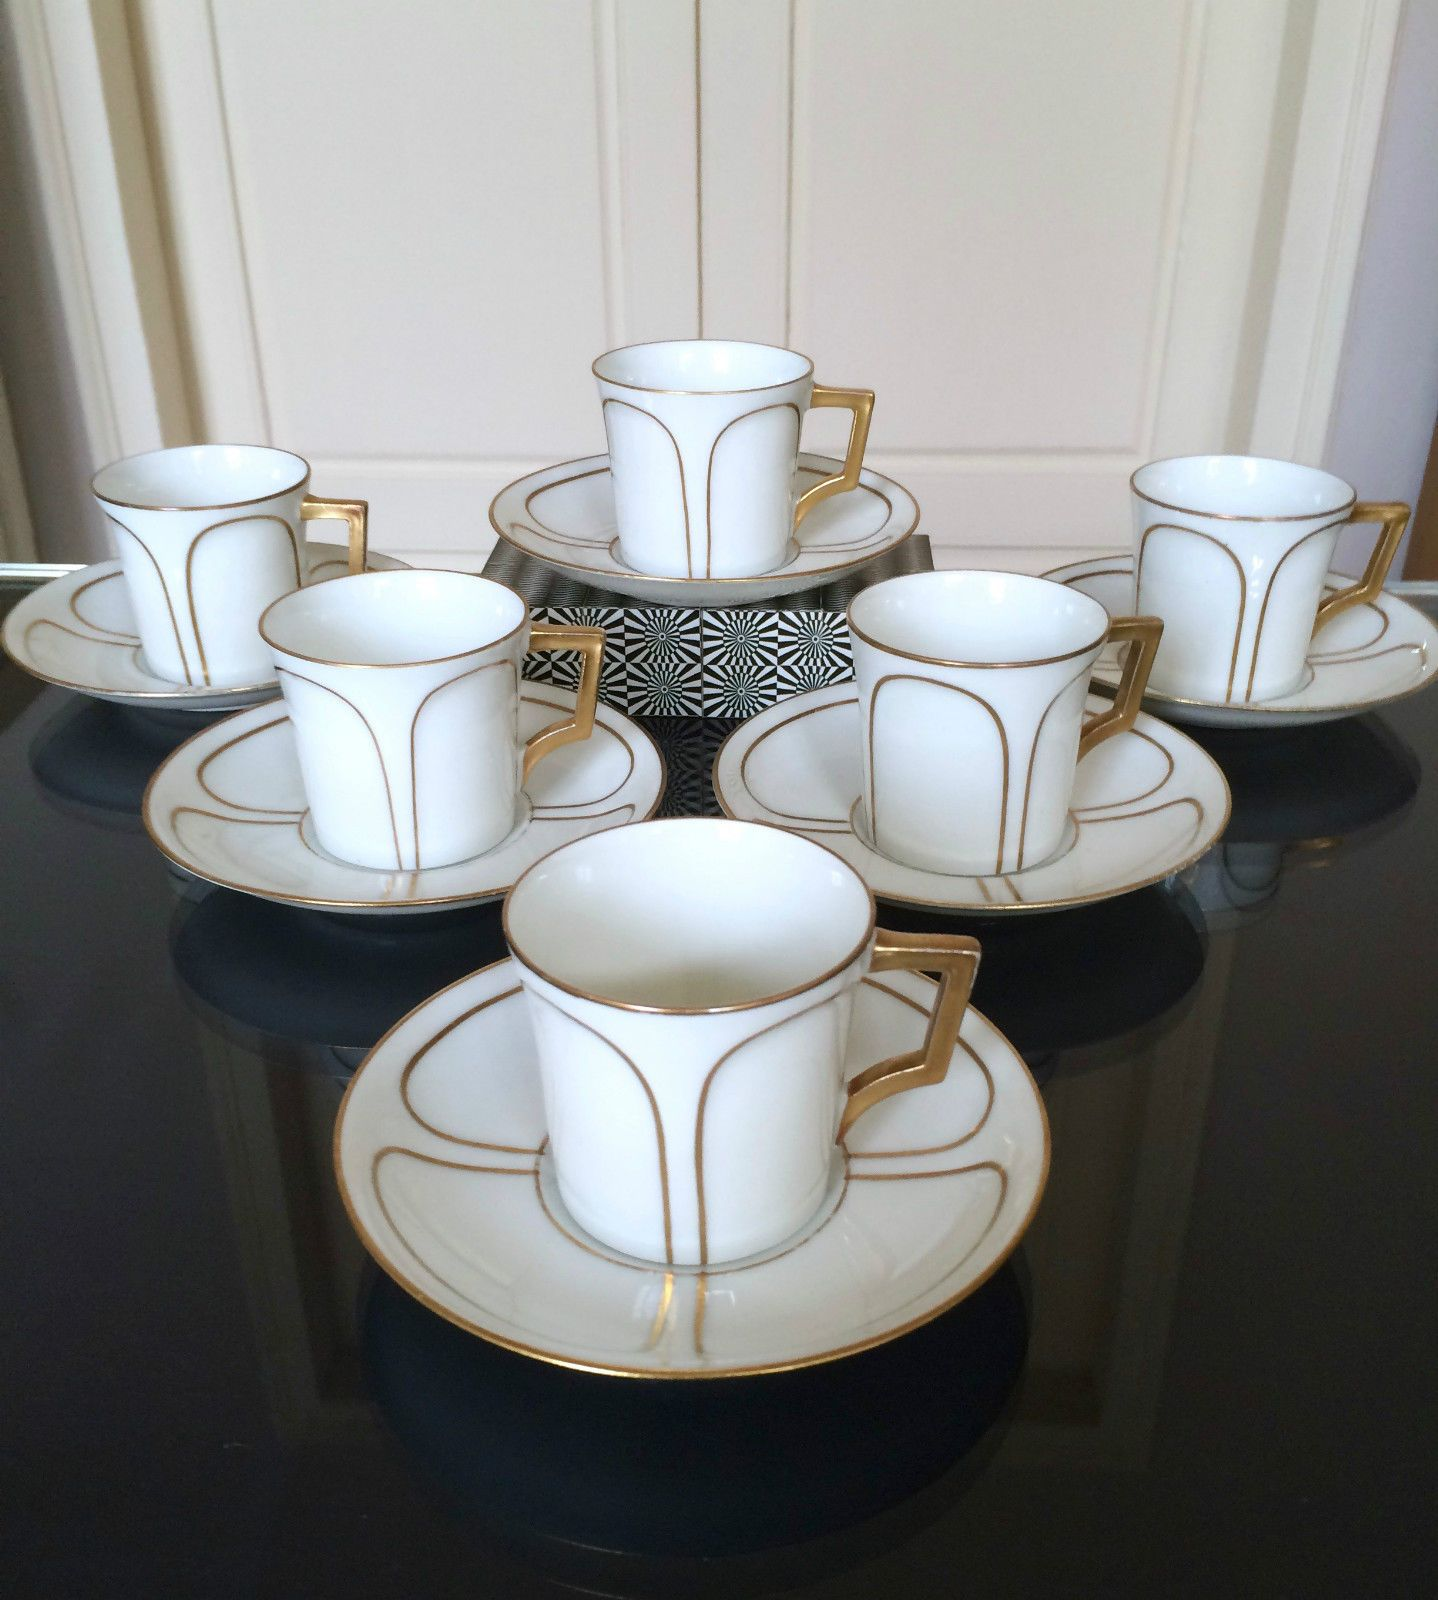 6 tasses caf art d co en porcelaine de limoges lanternier ebay l 39 heure du th pinterest. Black Bedroom Furniture Sets. Home Design Ideas